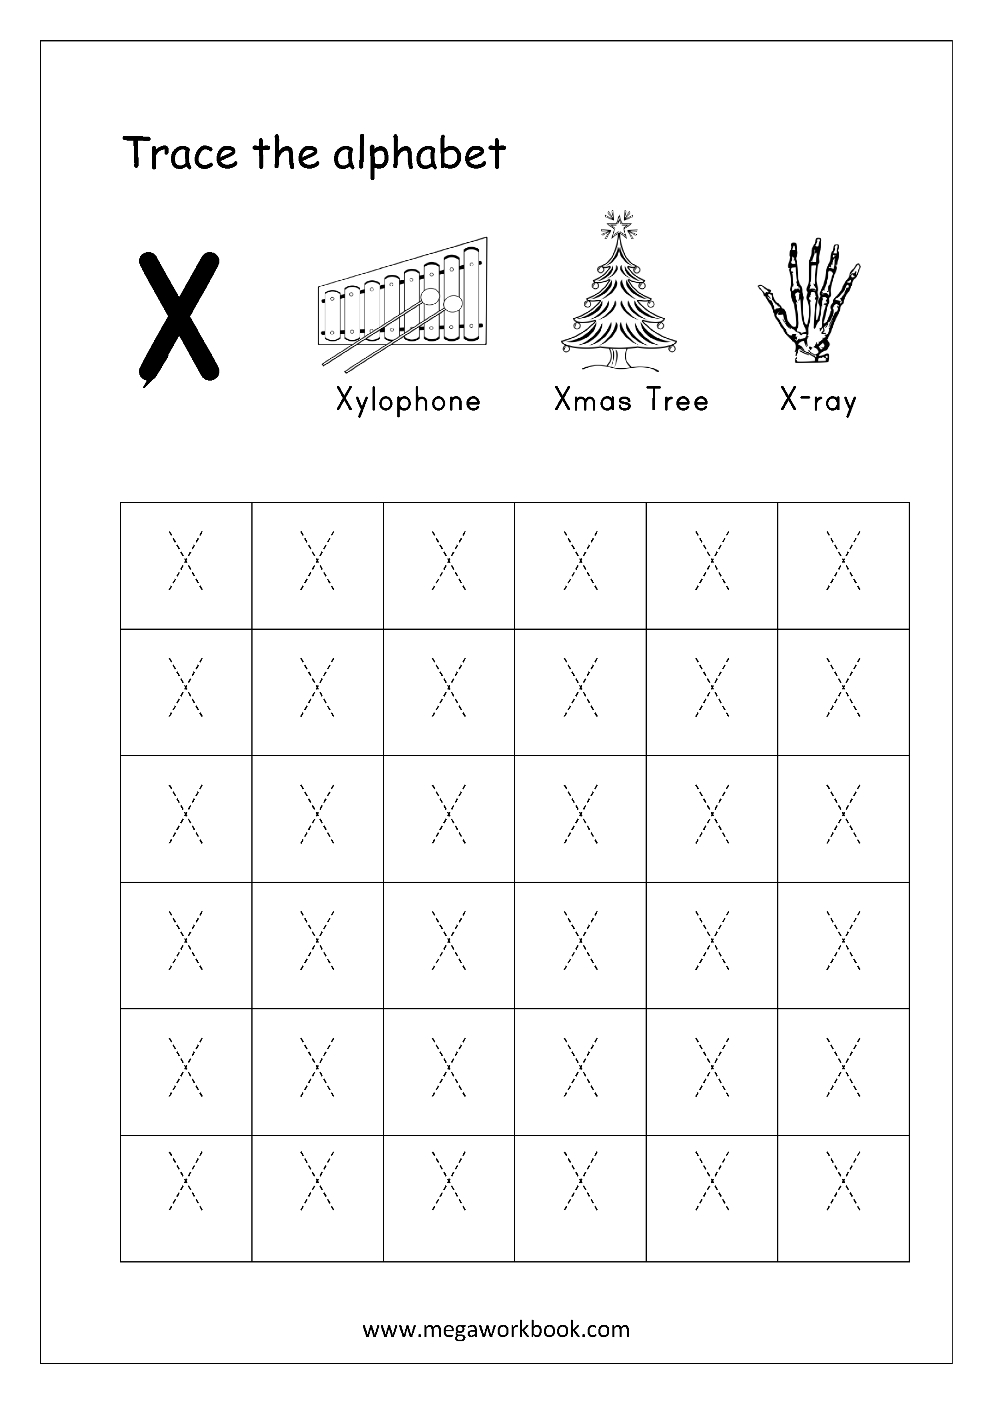 Ray Tracing Worksheet | Kids Activities regarding Tracing Letter X Worksheets